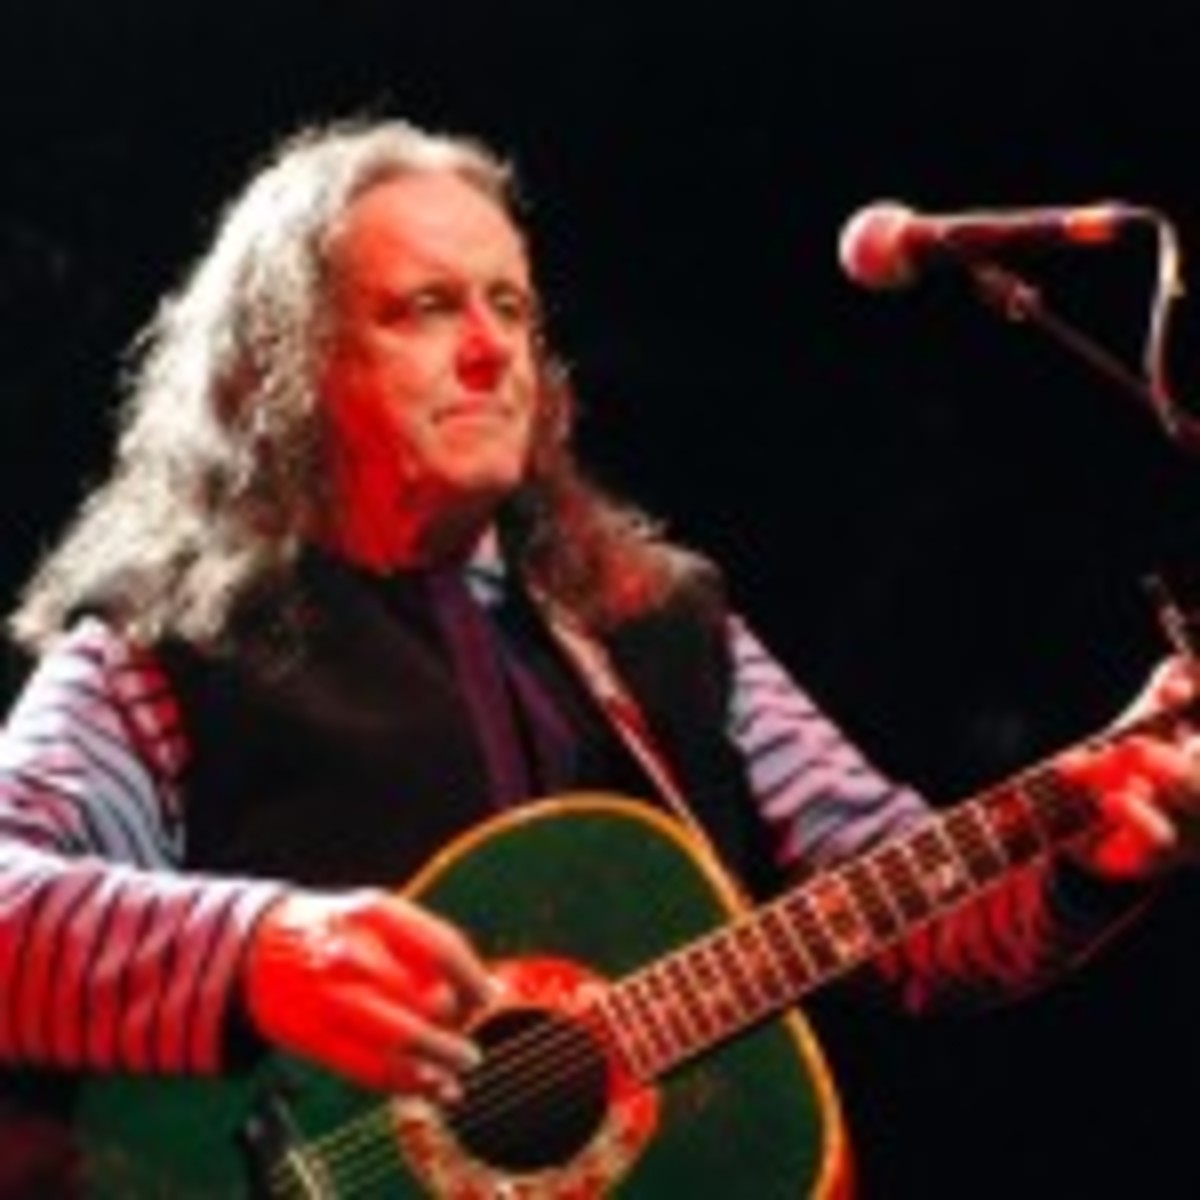 Donovan performs Sept. 24 during the Reeperbahn Festival in Hamburg, Germany. (Photo by Chris M. Junior)